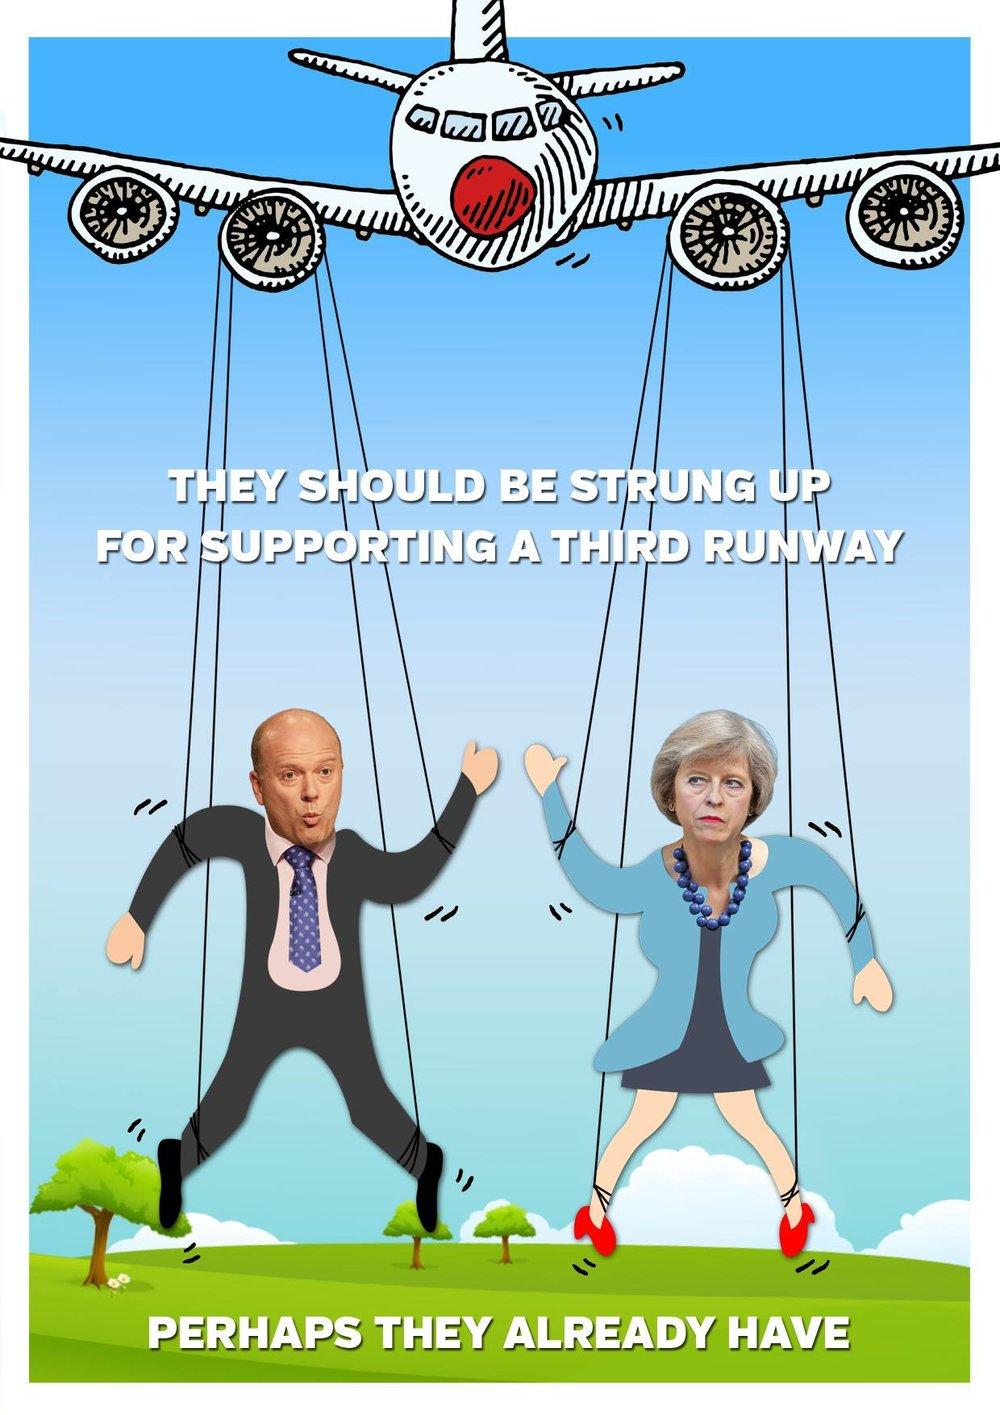 Heathrow has got Grayling and May where they want them